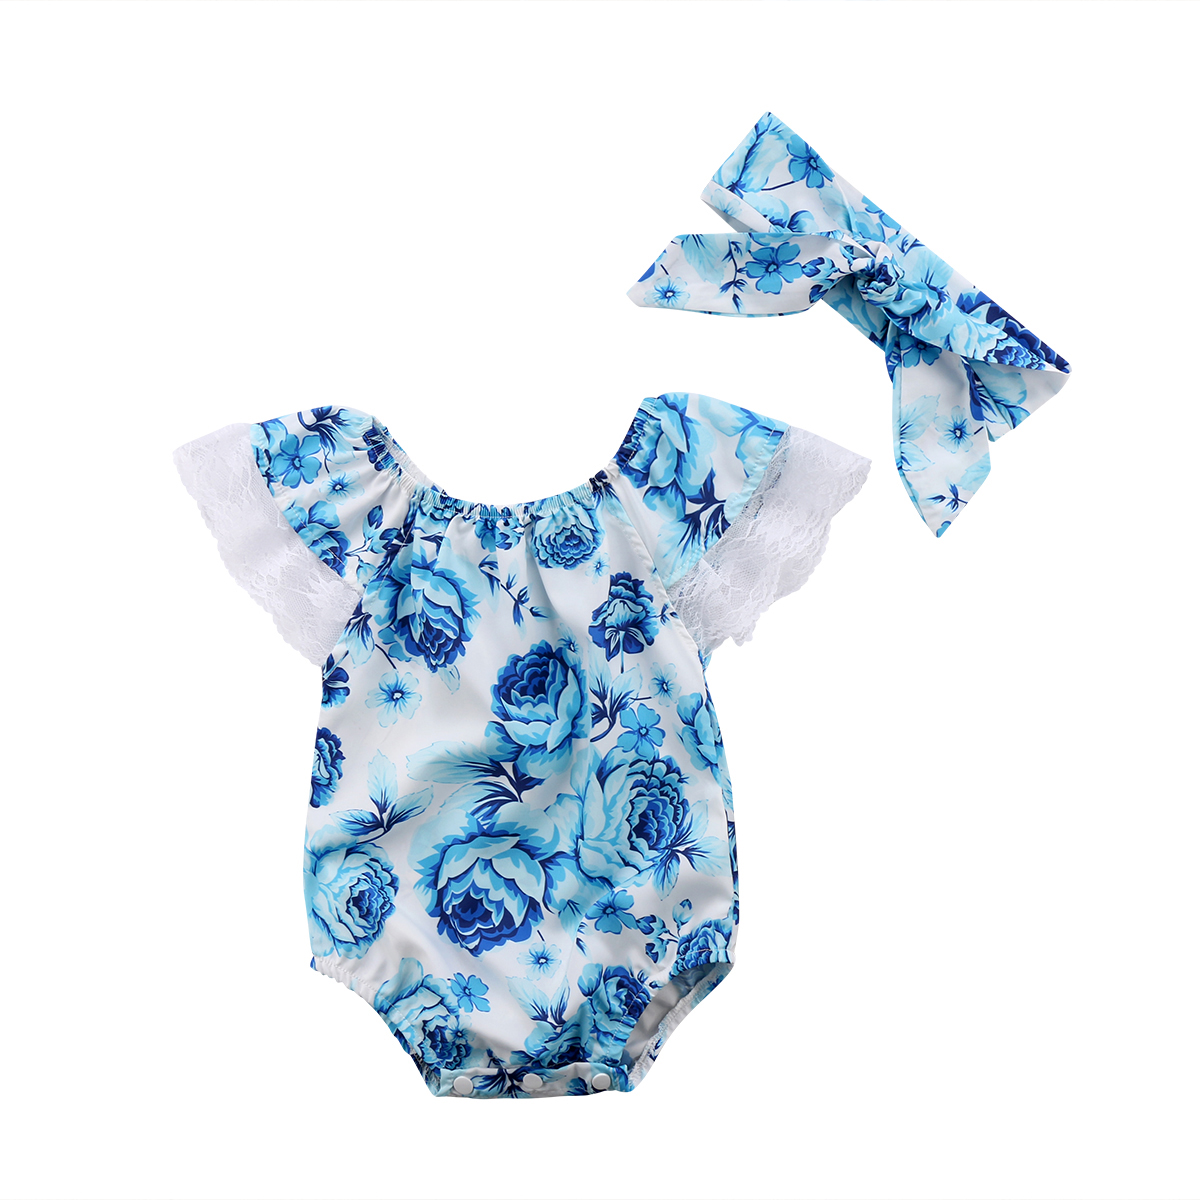 Newborn Baby Girls Lace Floral Romper Jumpsuit Outfits Sunsuit Summer Clothes  Baby Clothing